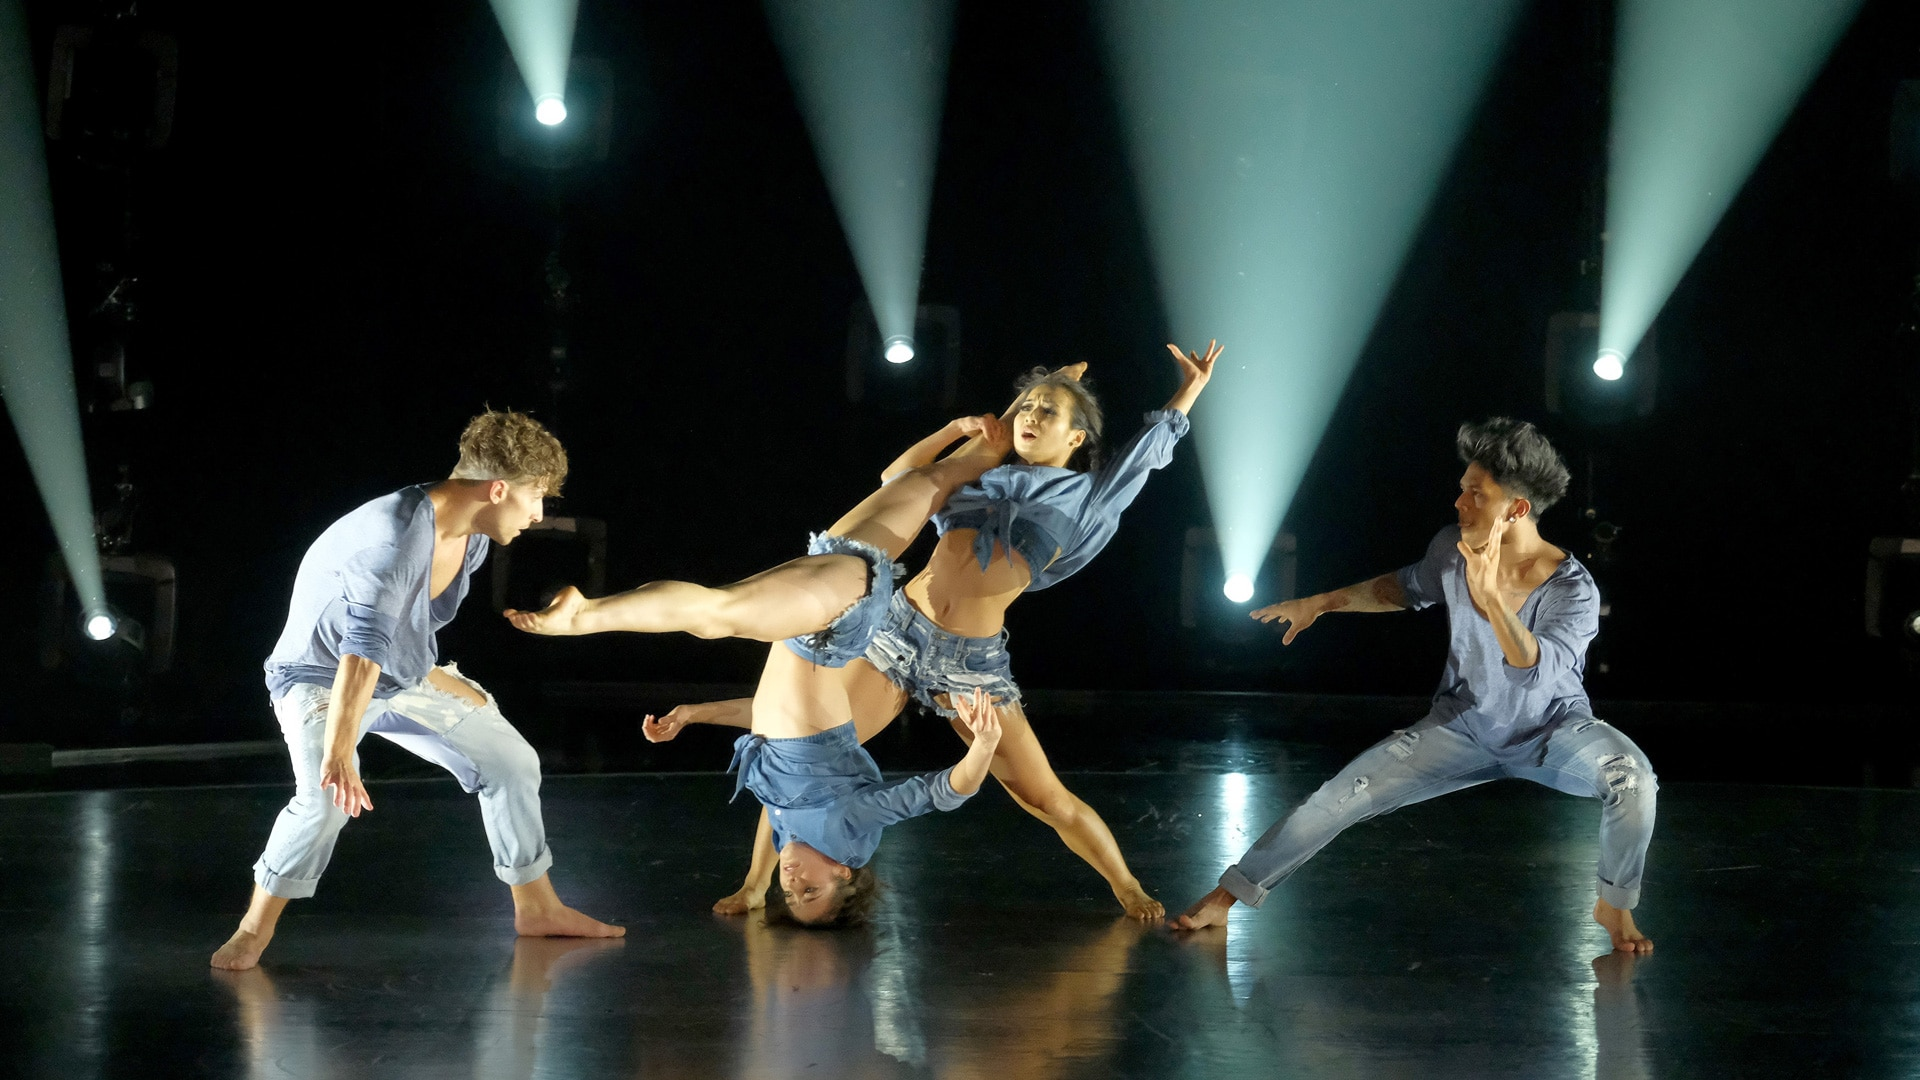 Things You Should Know Before Dating A Dancer